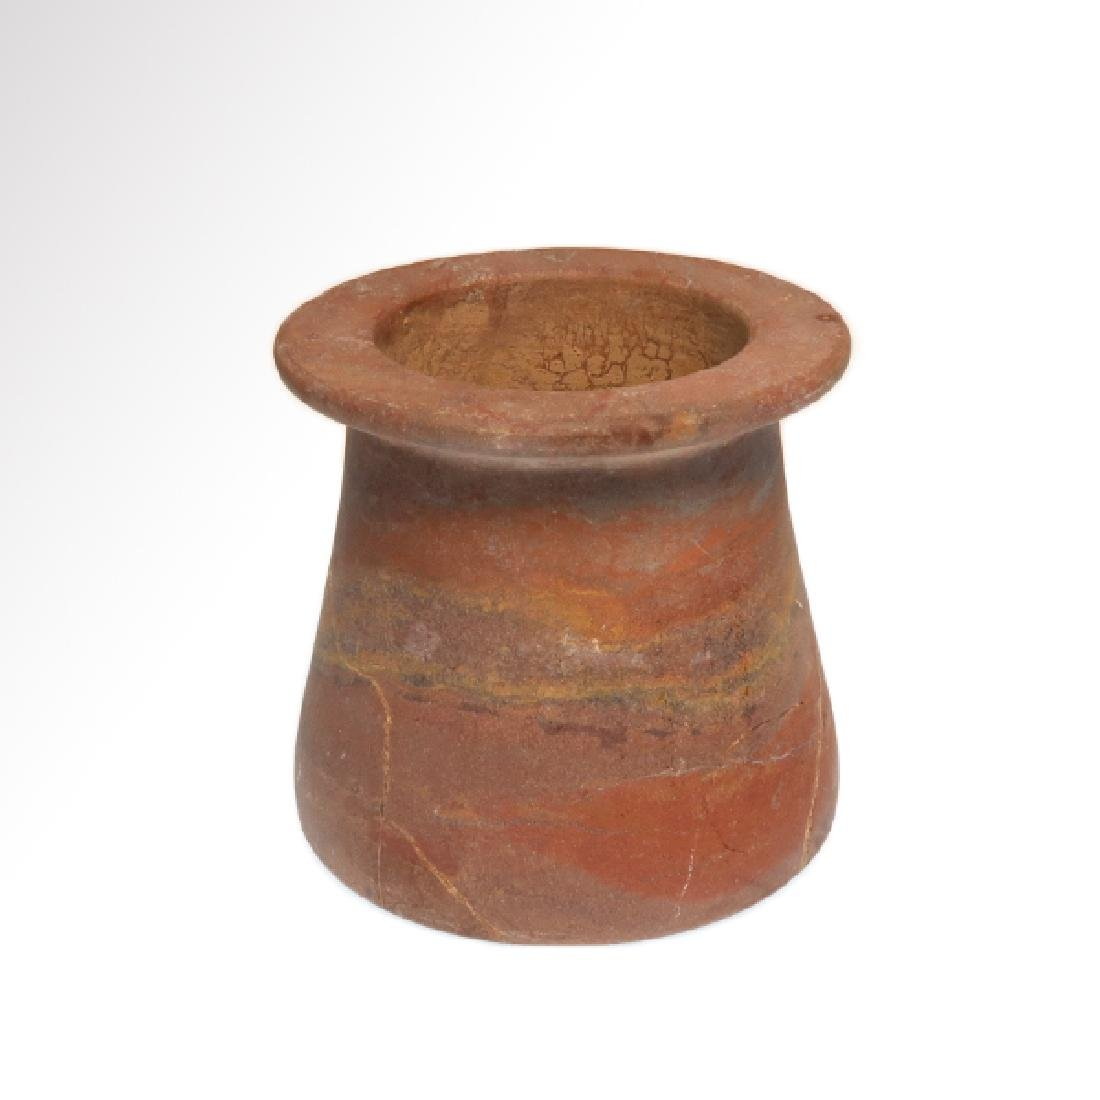 Egyptian Red Marble Vessel Jar, Early Dynastic, c. 2700